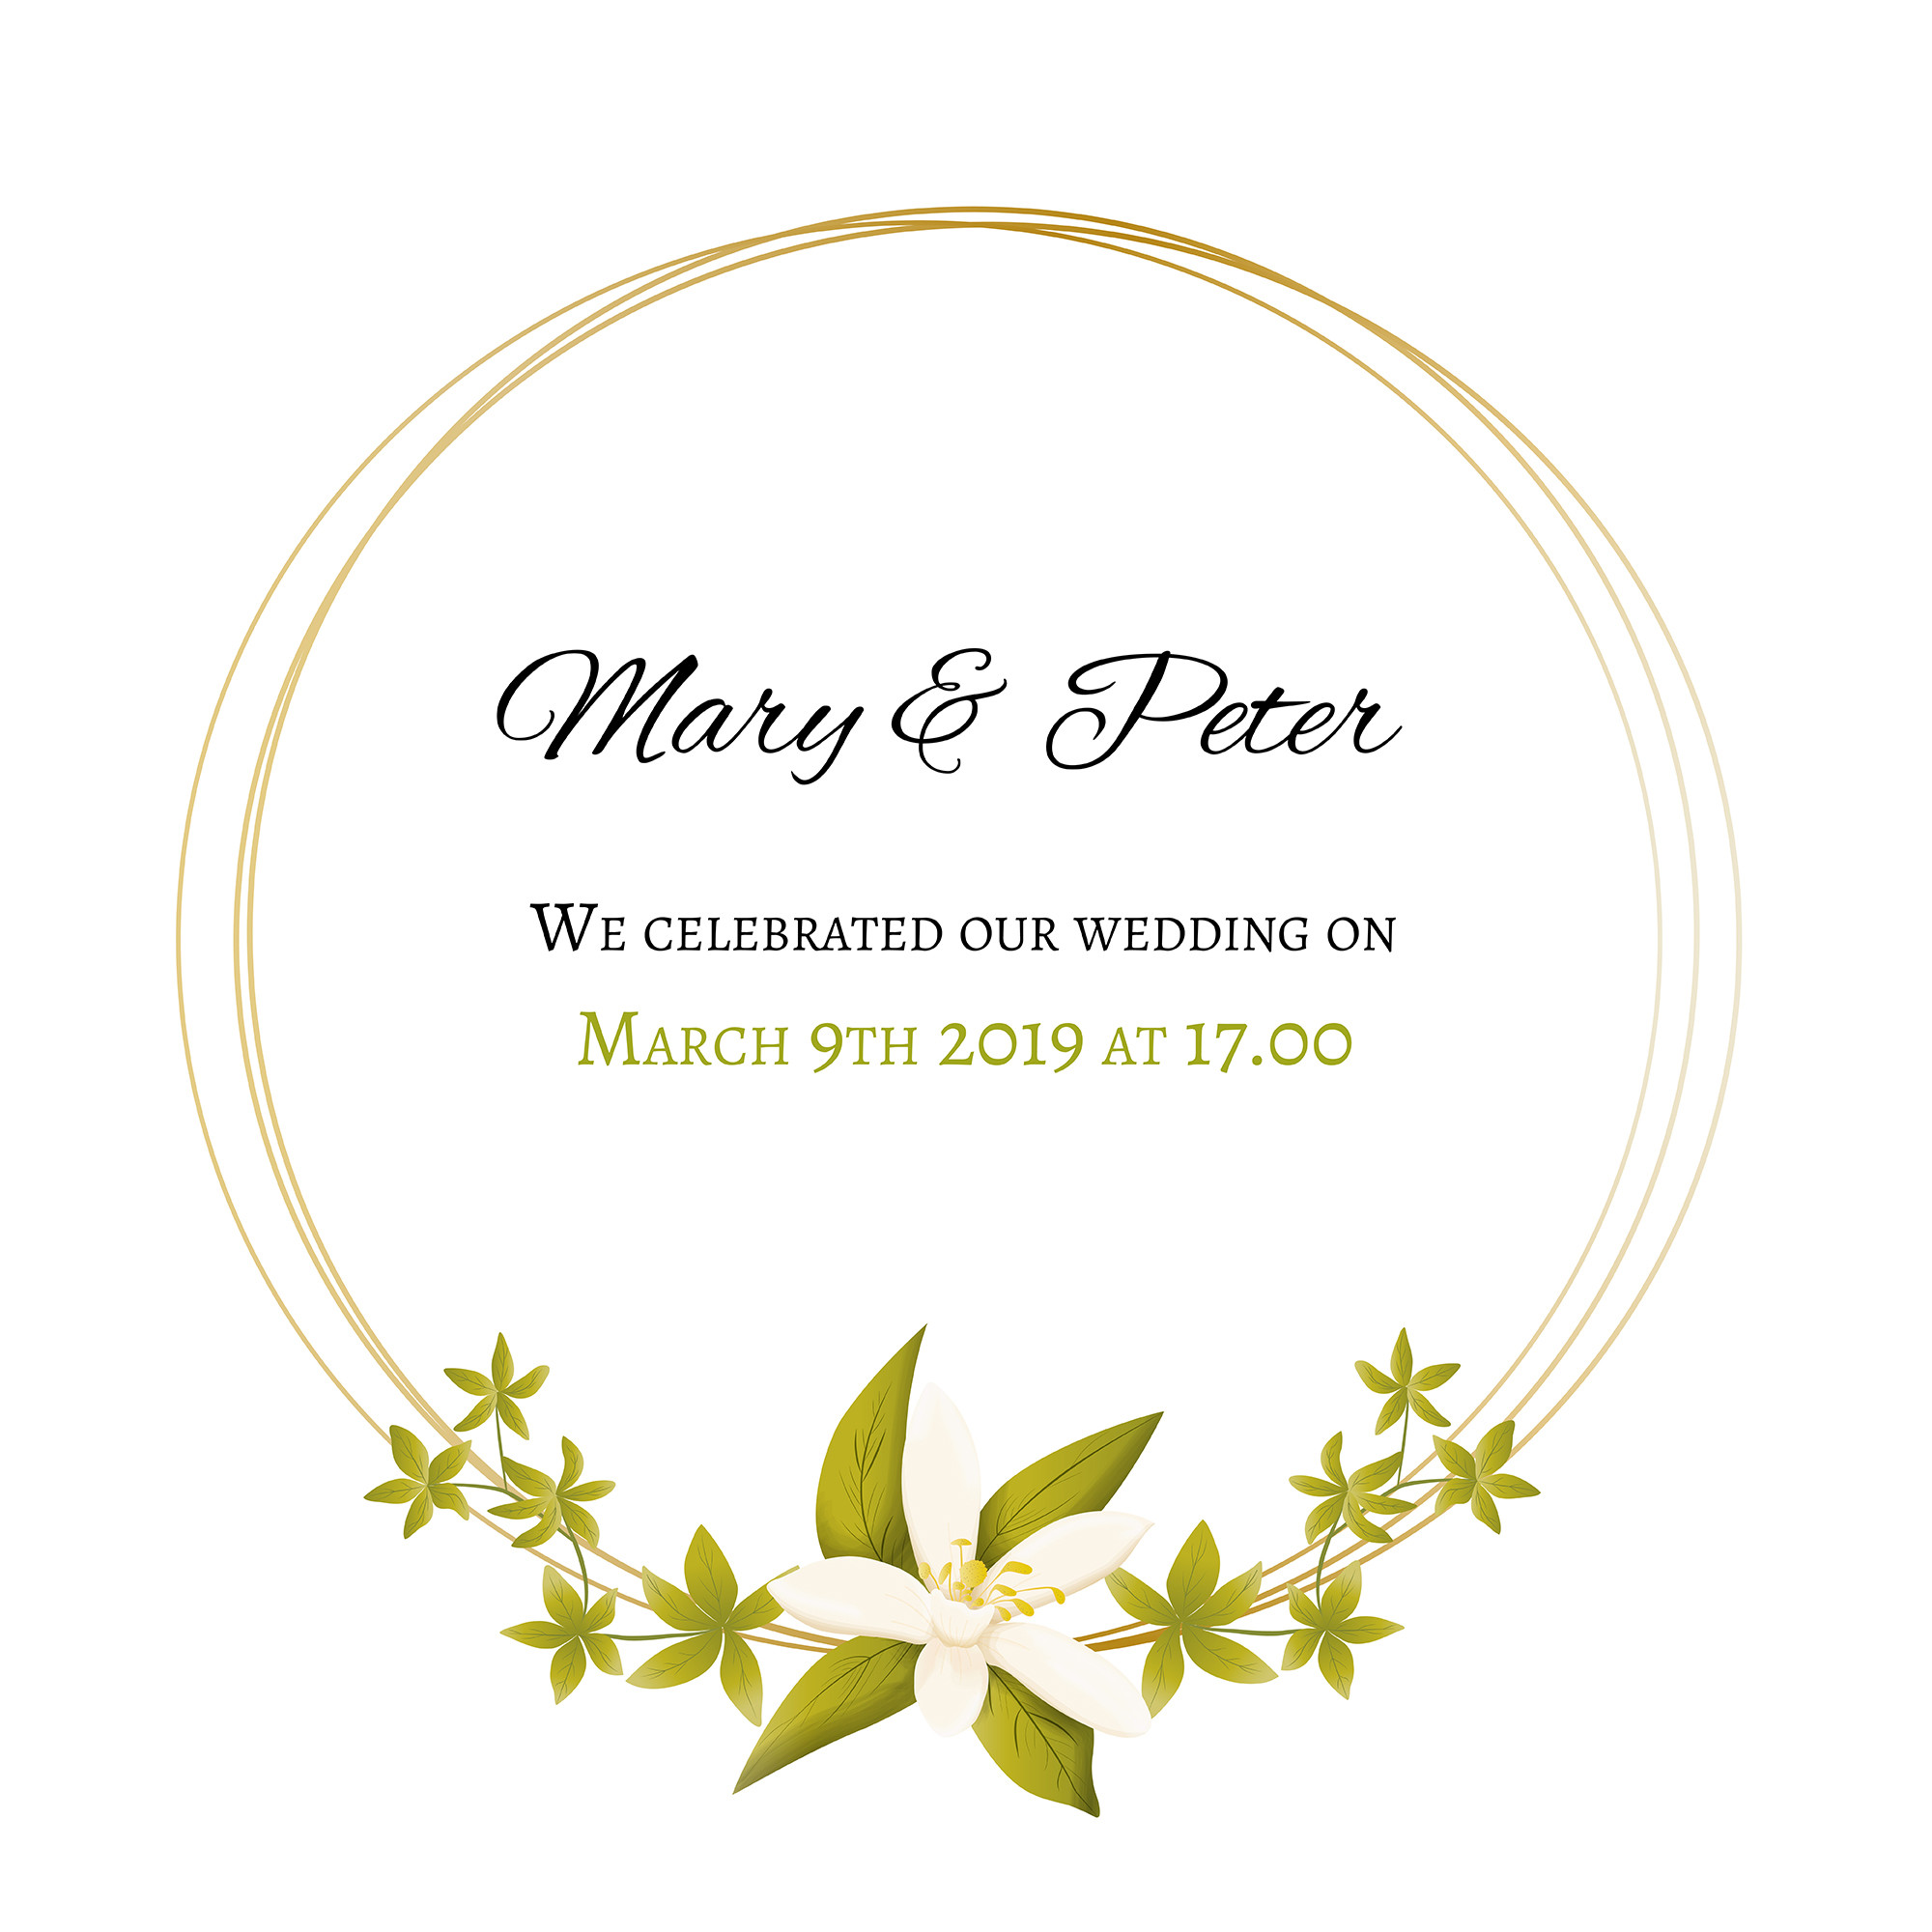 Wedding invitation with floral and golden frame